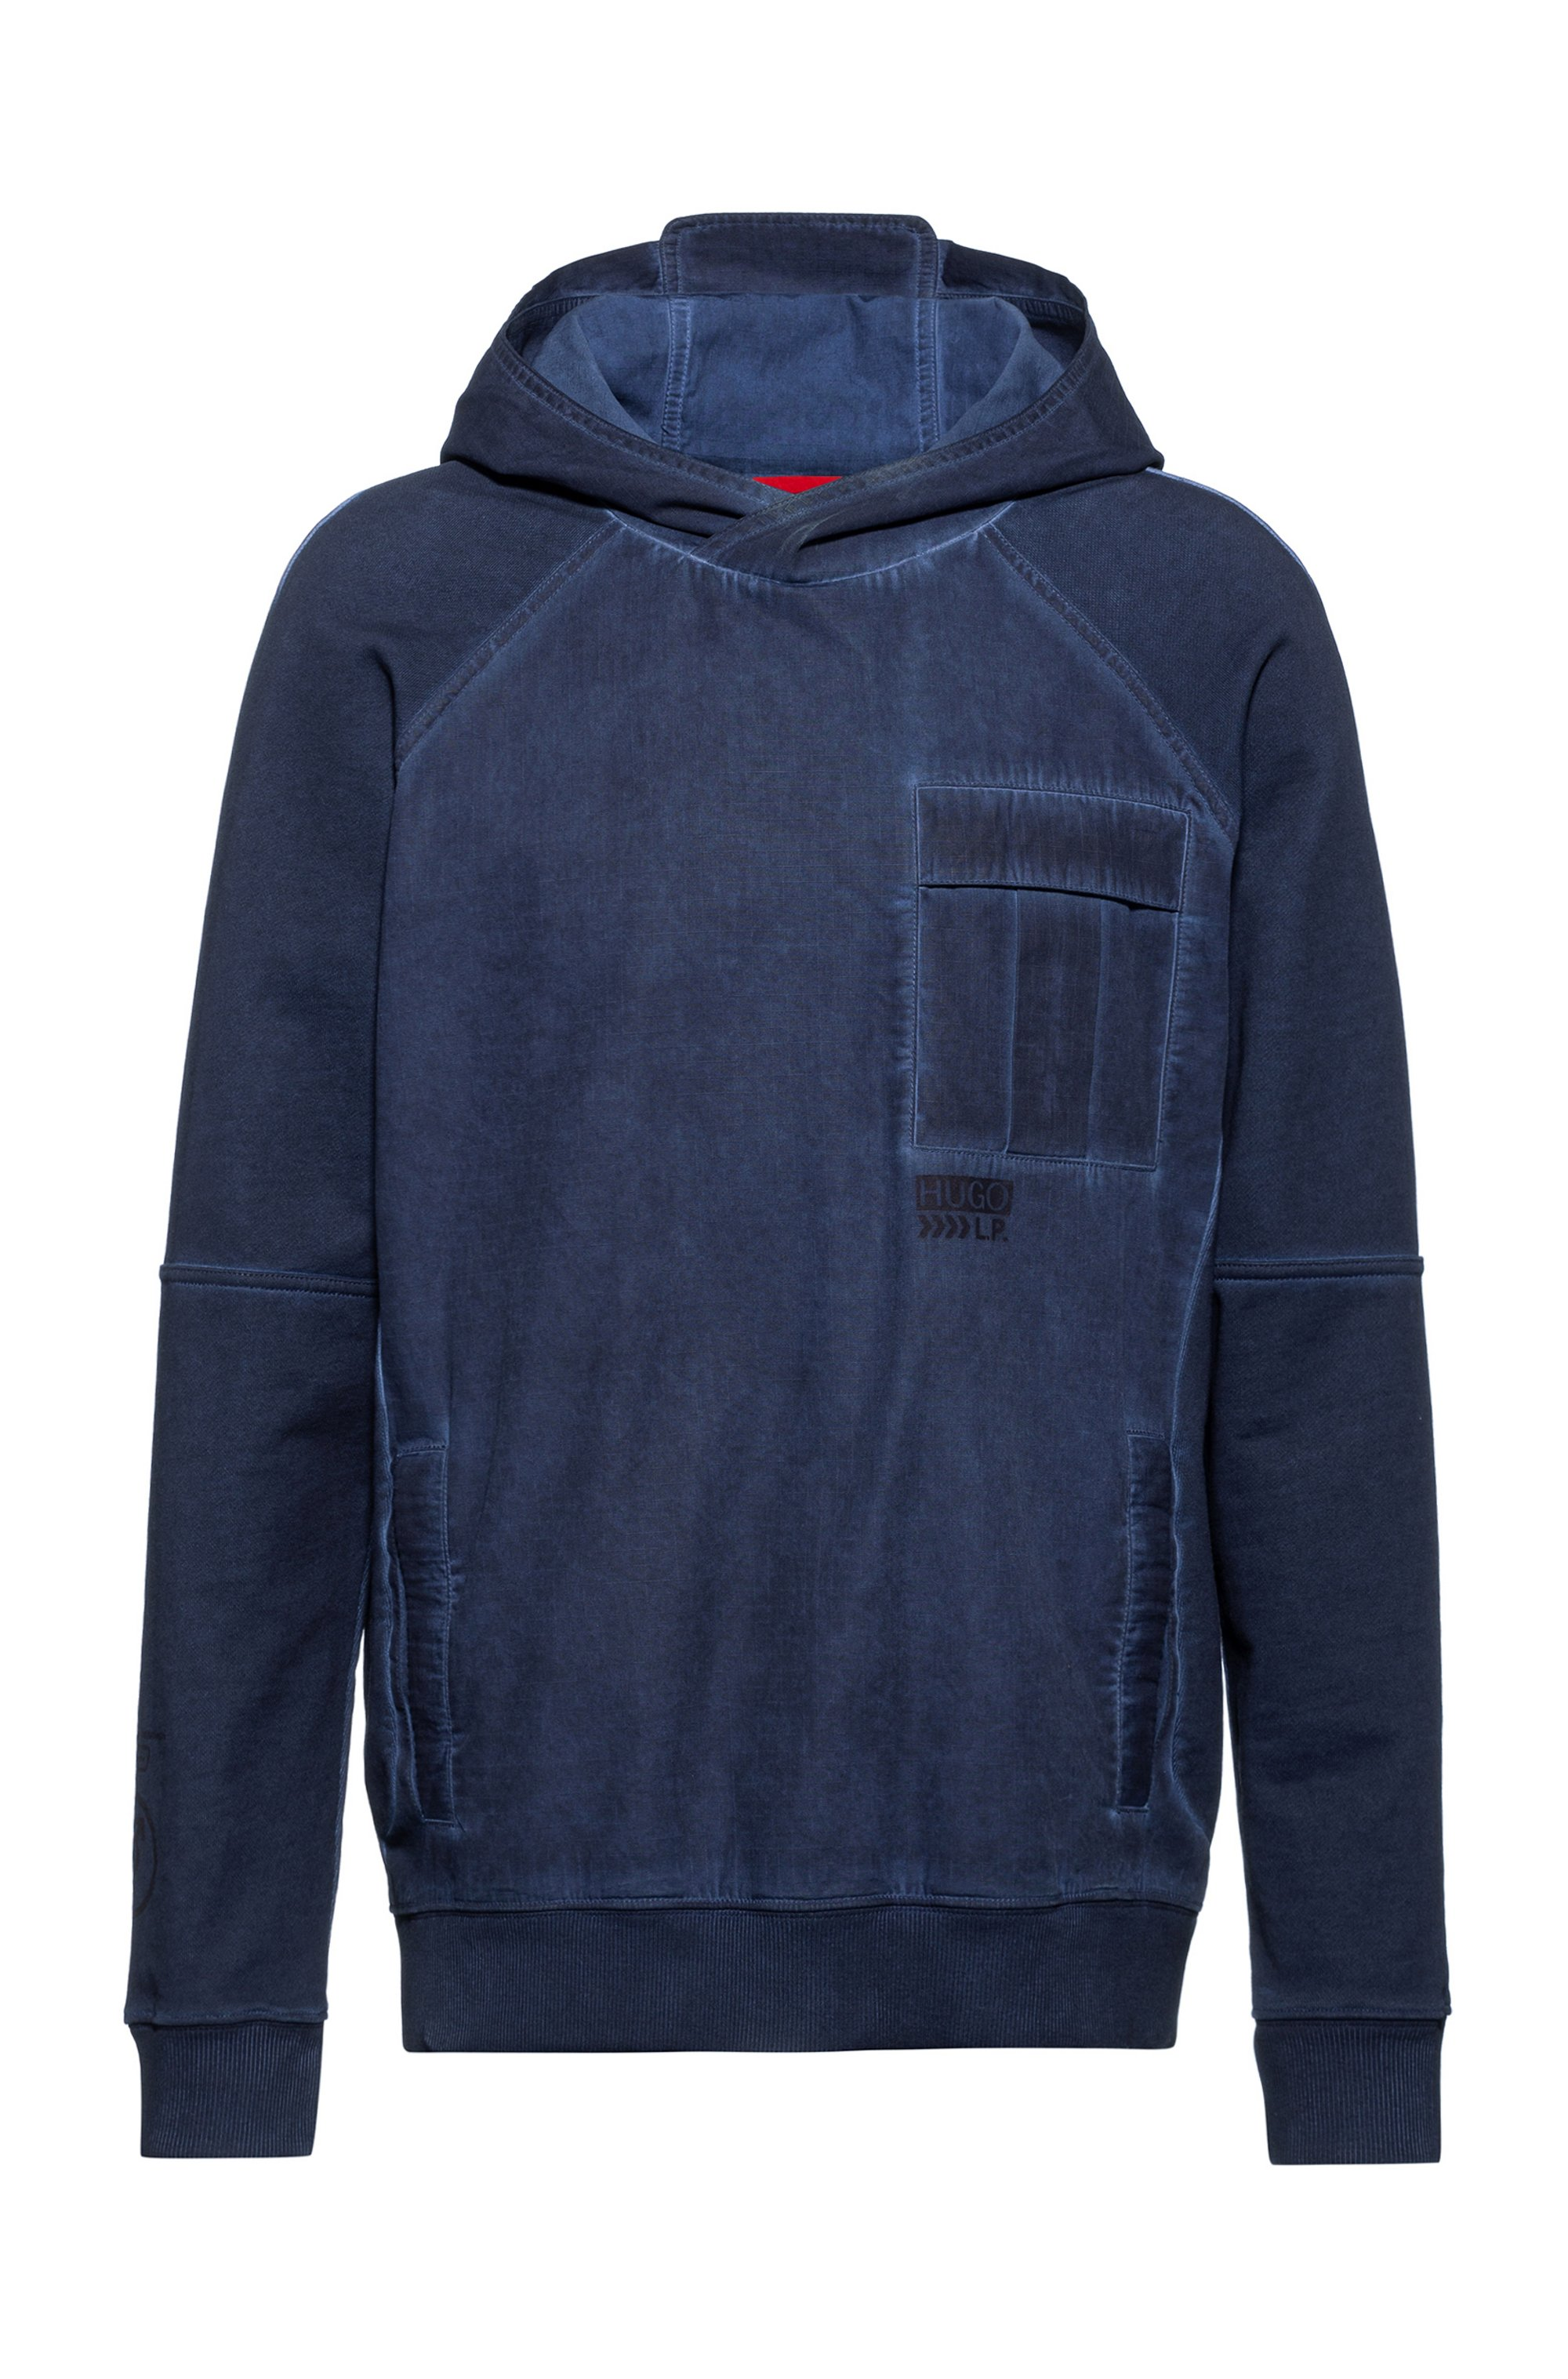 Unisex hooded sweatshirt in cotton with chevron-print logo, Dark Blue